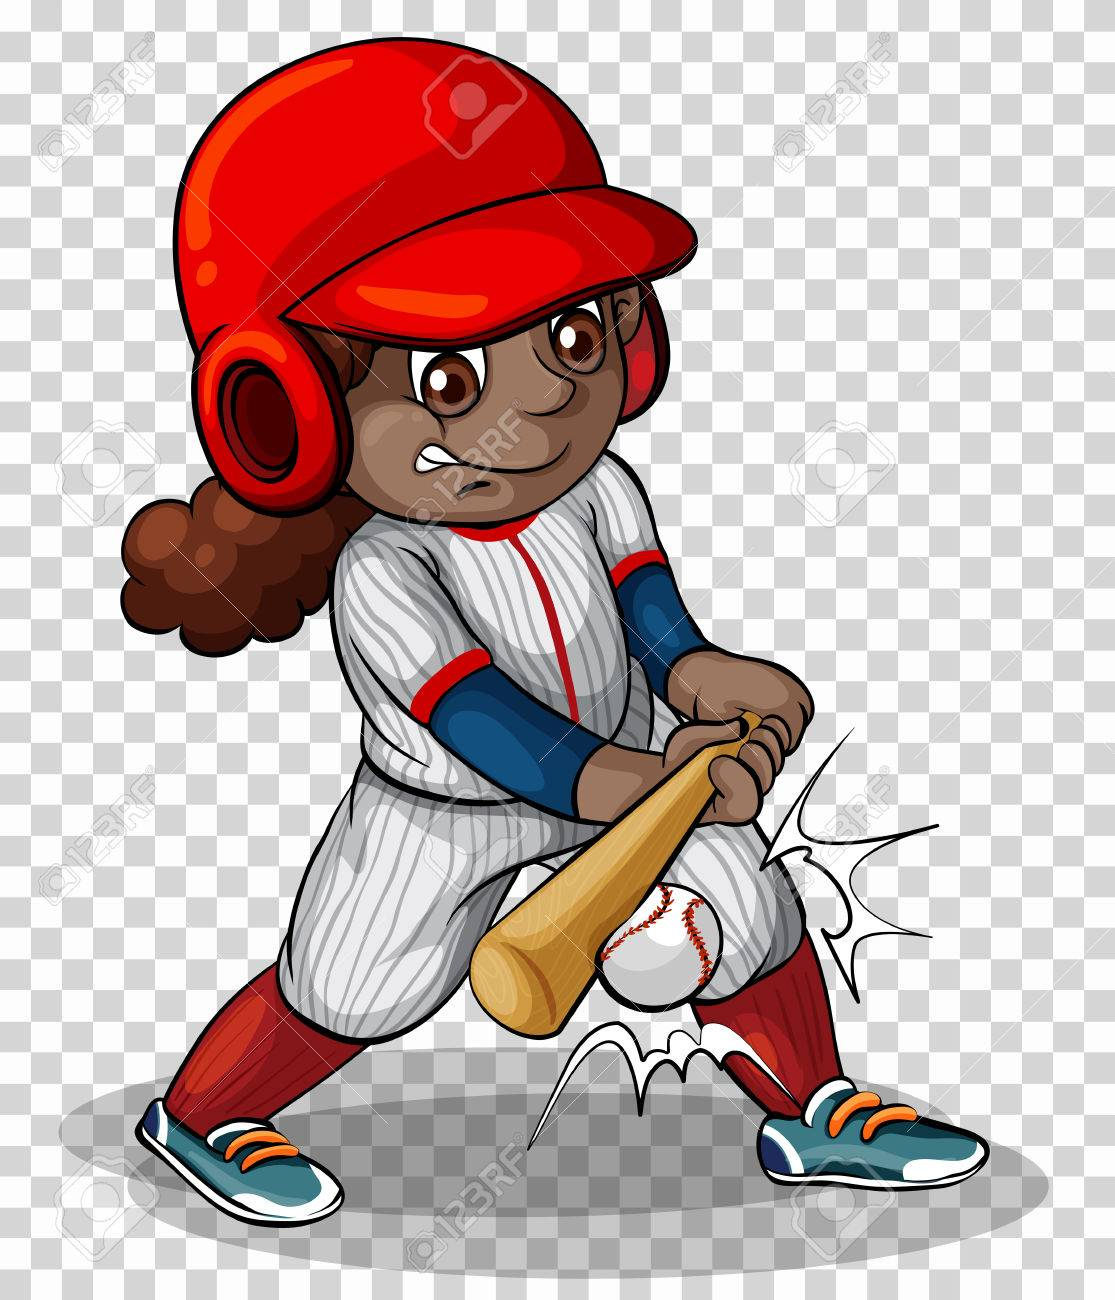 Free Kids Baseball Pictures, Download Free Clip Art, Free Clip Art on  Clipart Library